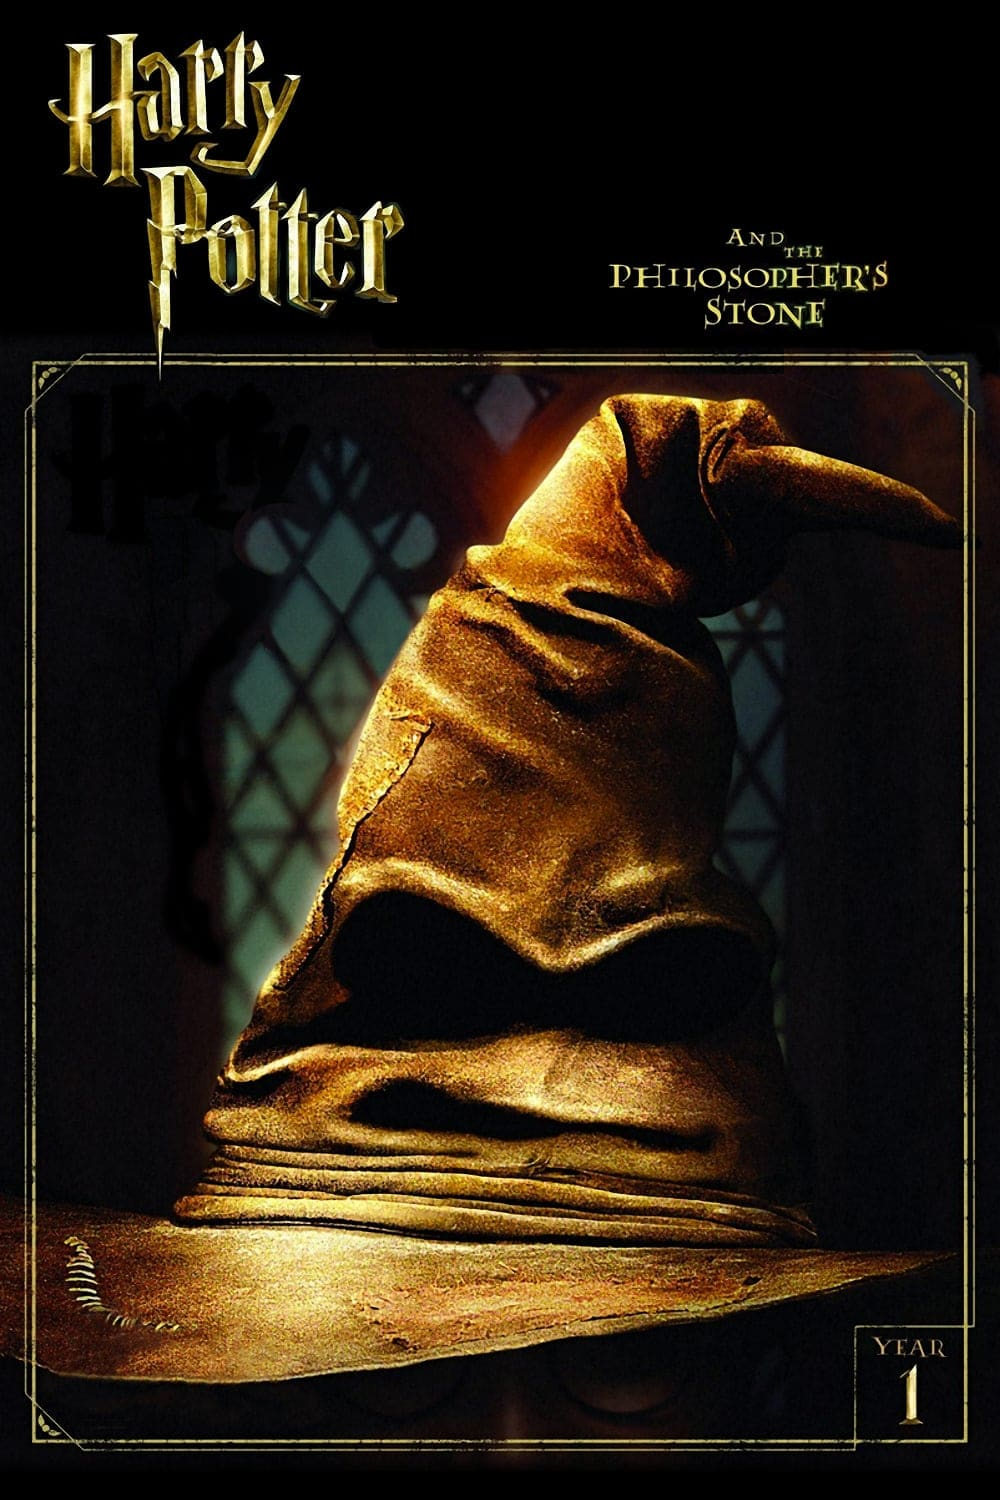 harry potter poster the philosophers stone high quality HD printable wallpapers the magical hat